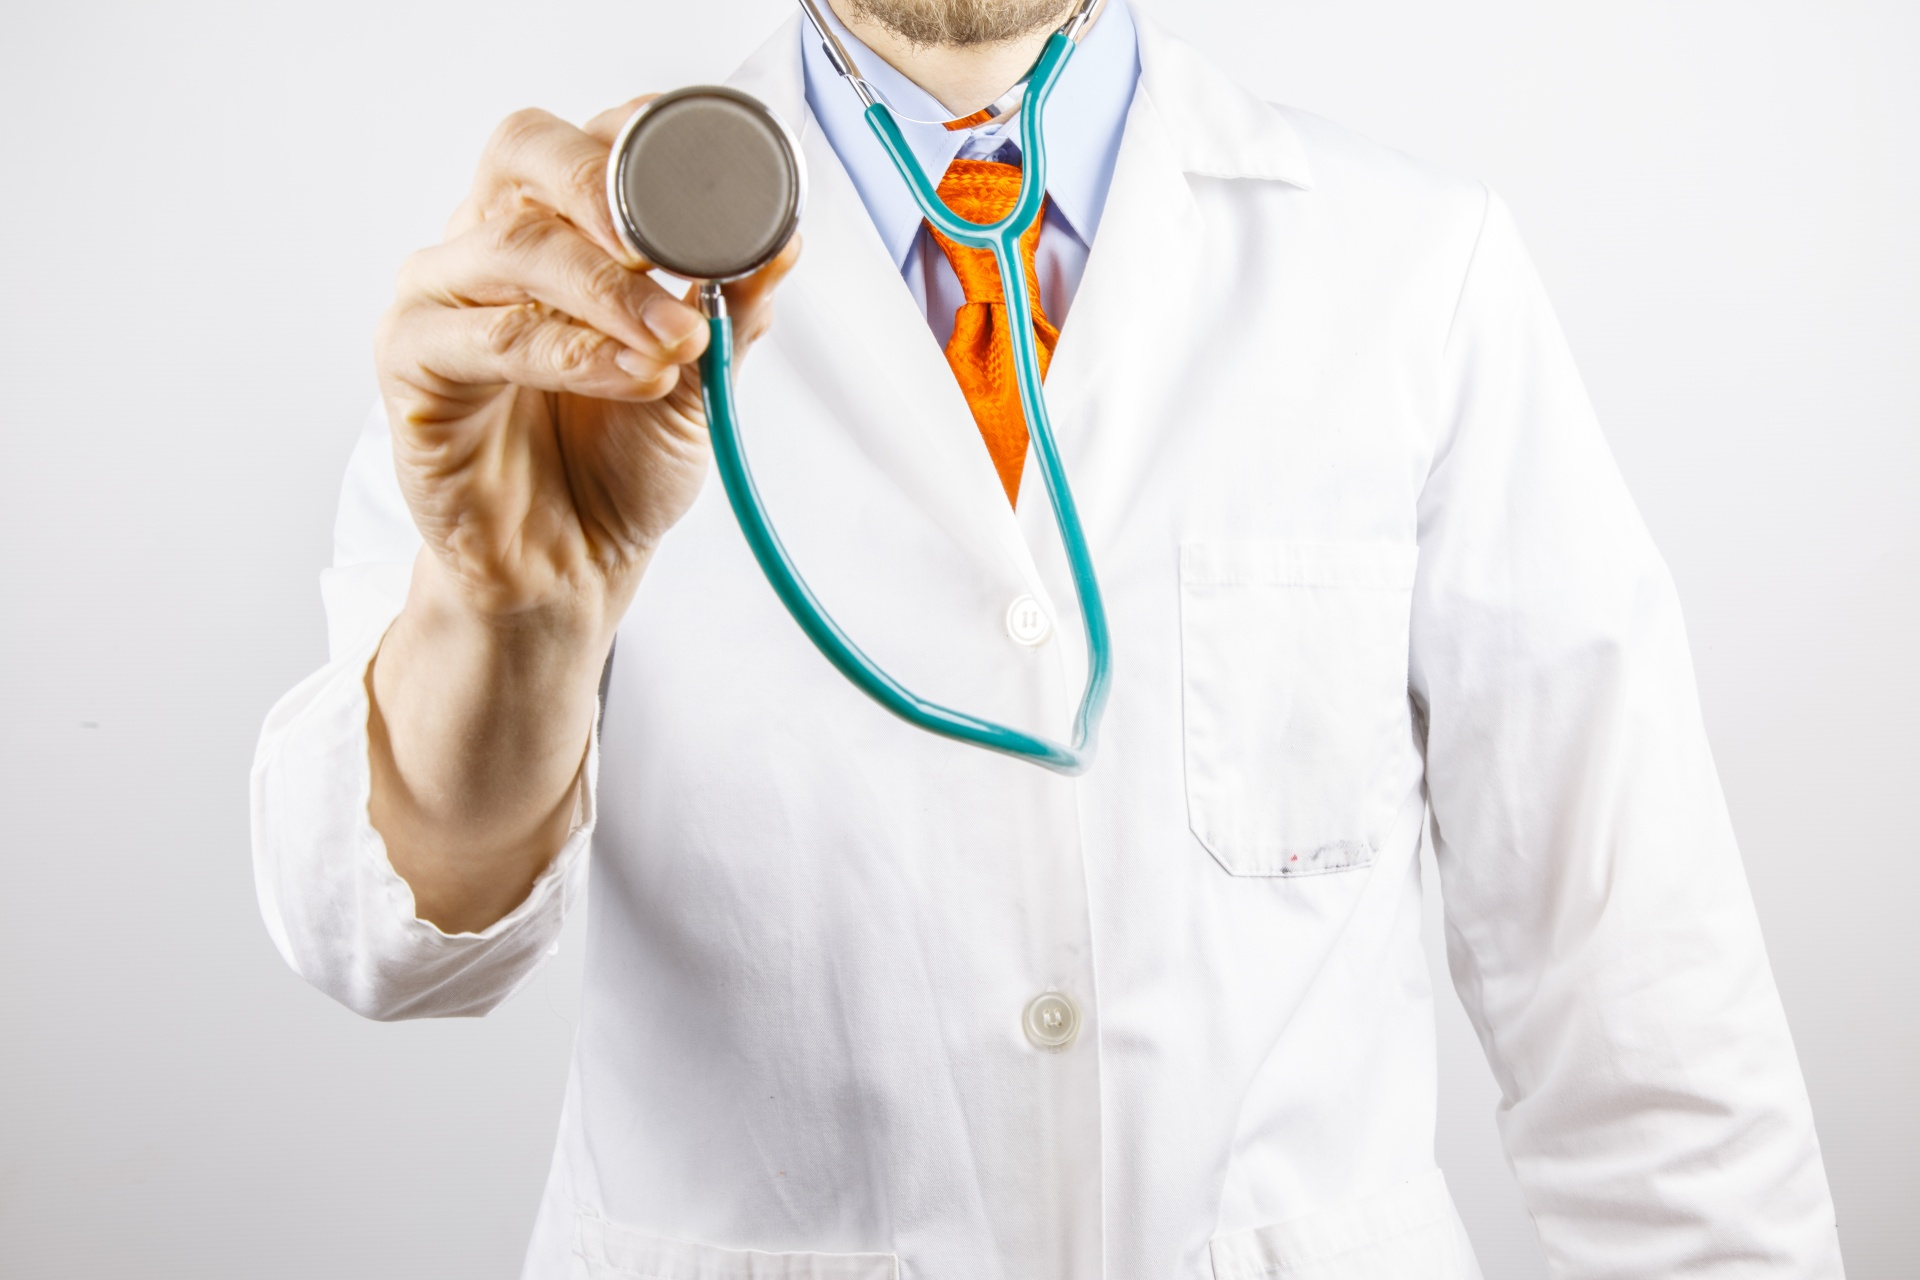 break a leg: how to get started in the healthcare sector